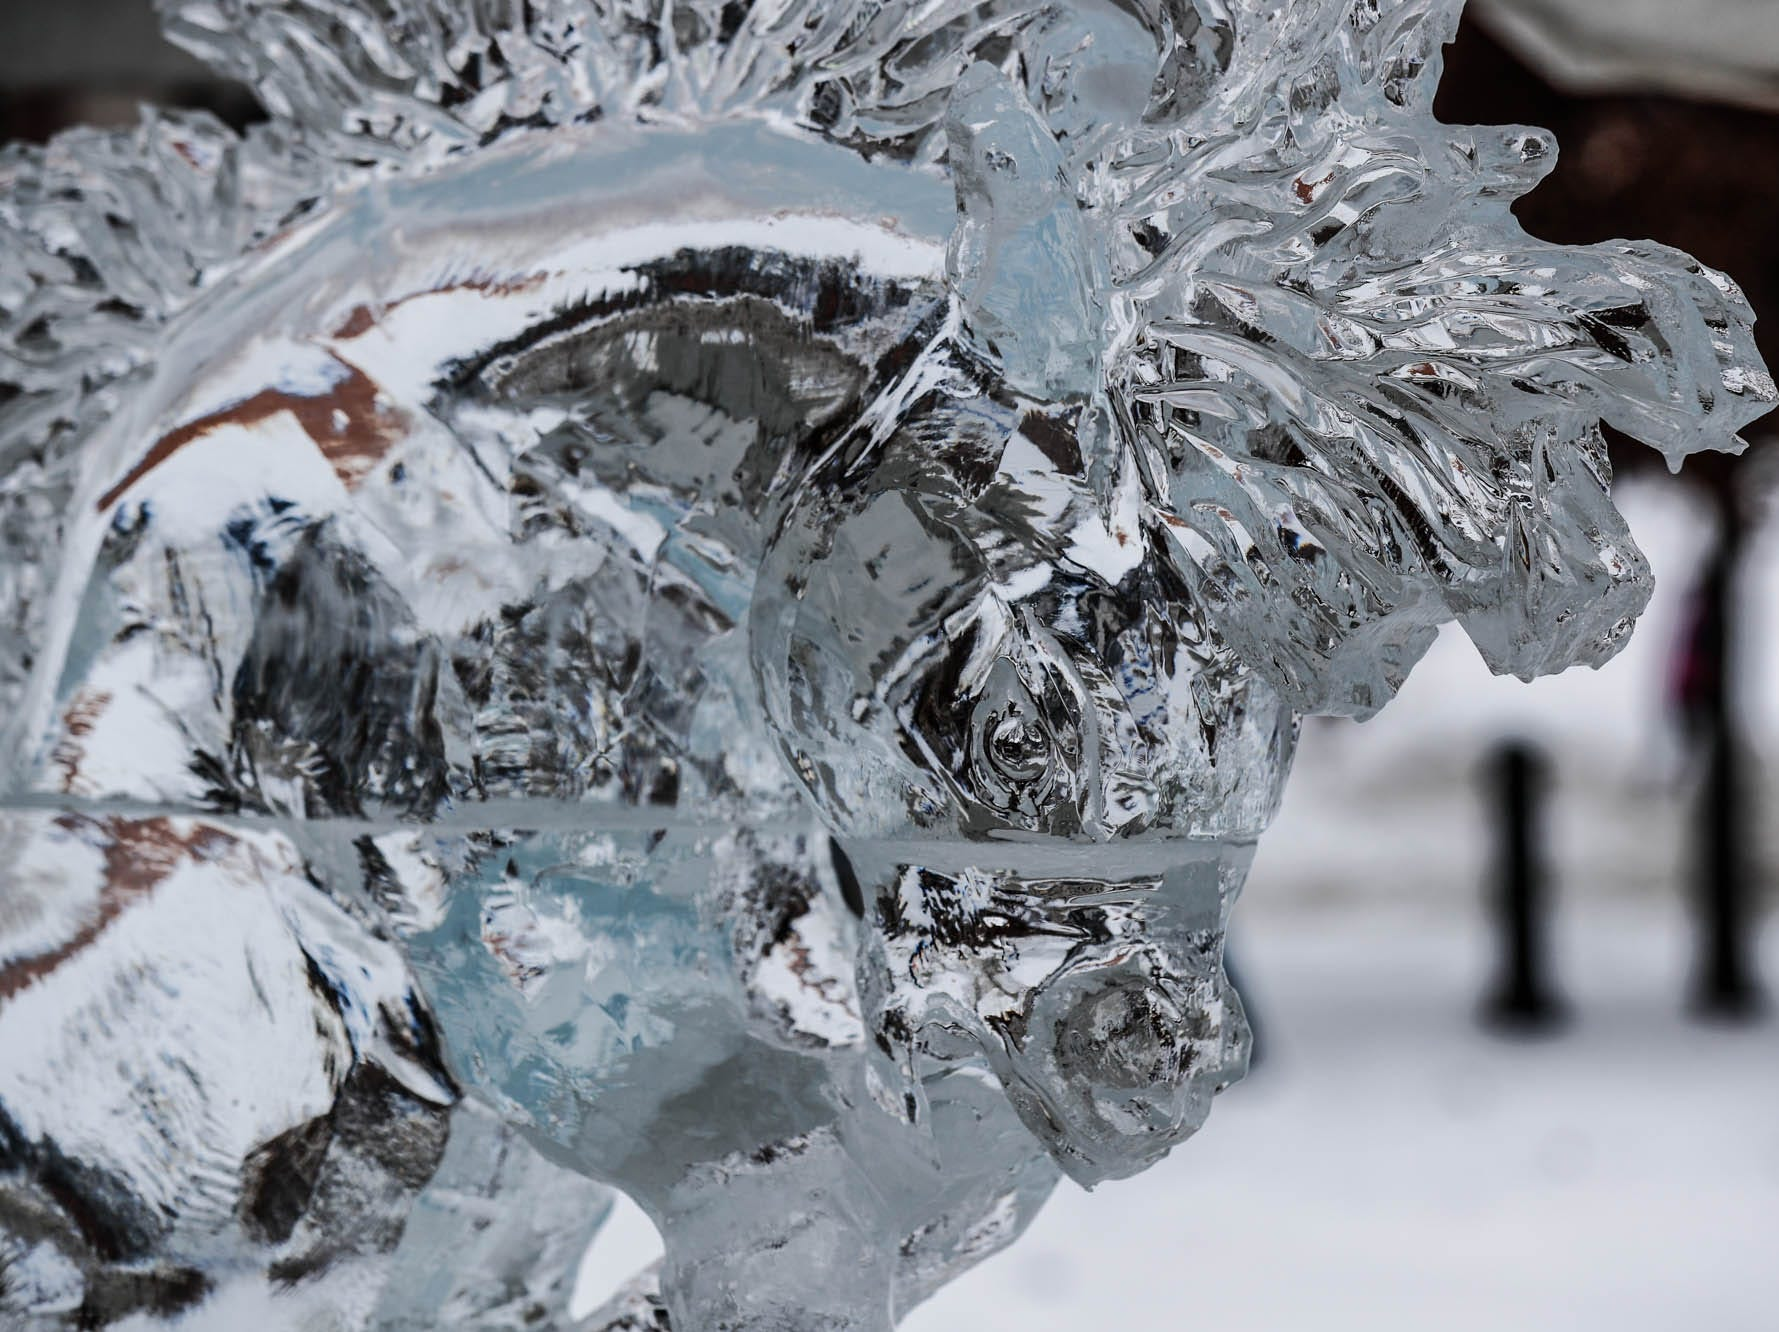 A horse ice sculpture created by Michael Stoddart is on display during the second annual Carmel Festival of Ice, held at Center Green in Carmel Ind. on Sunday, Jan. 13, 2019.